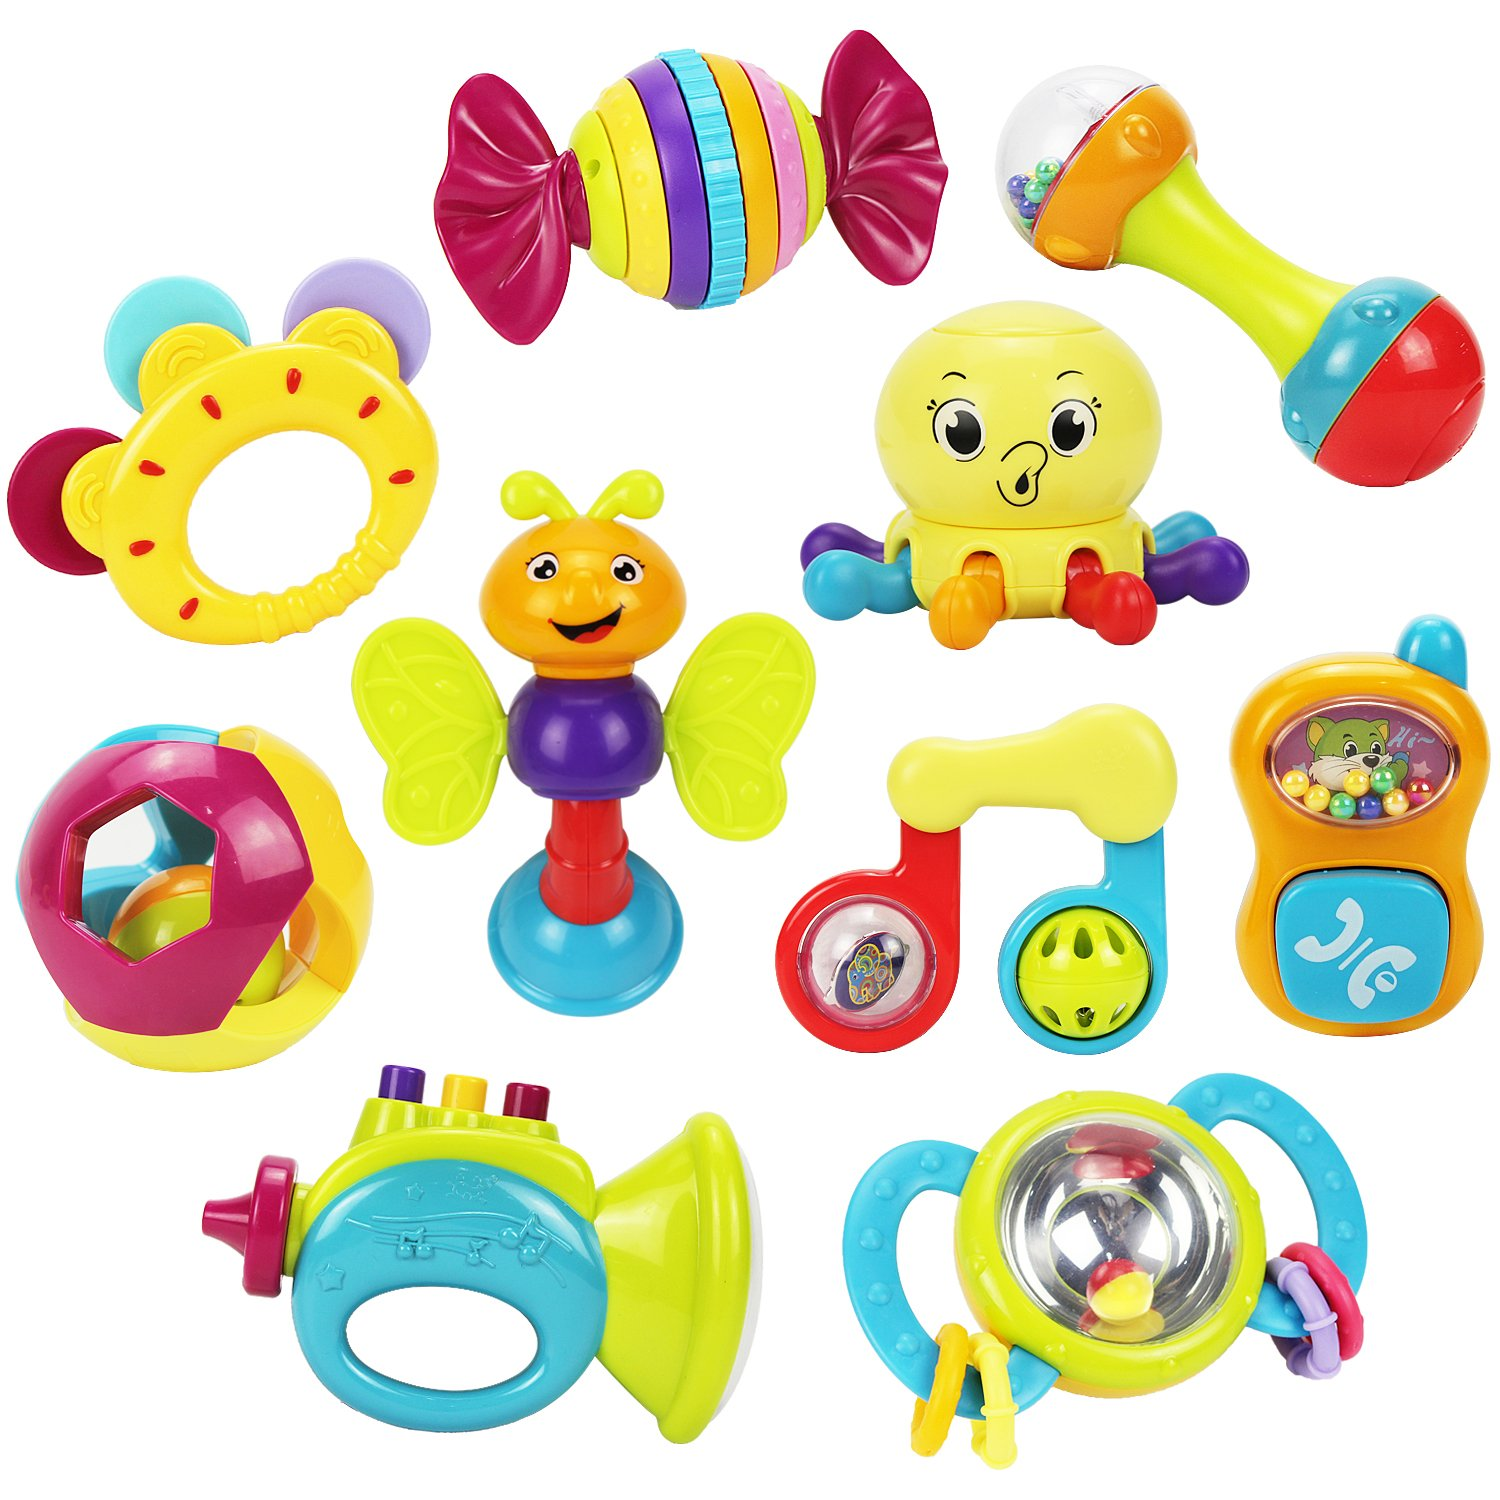 Amazon Baby & Toddler Toys Toys & Games Toy Gift Sets Push